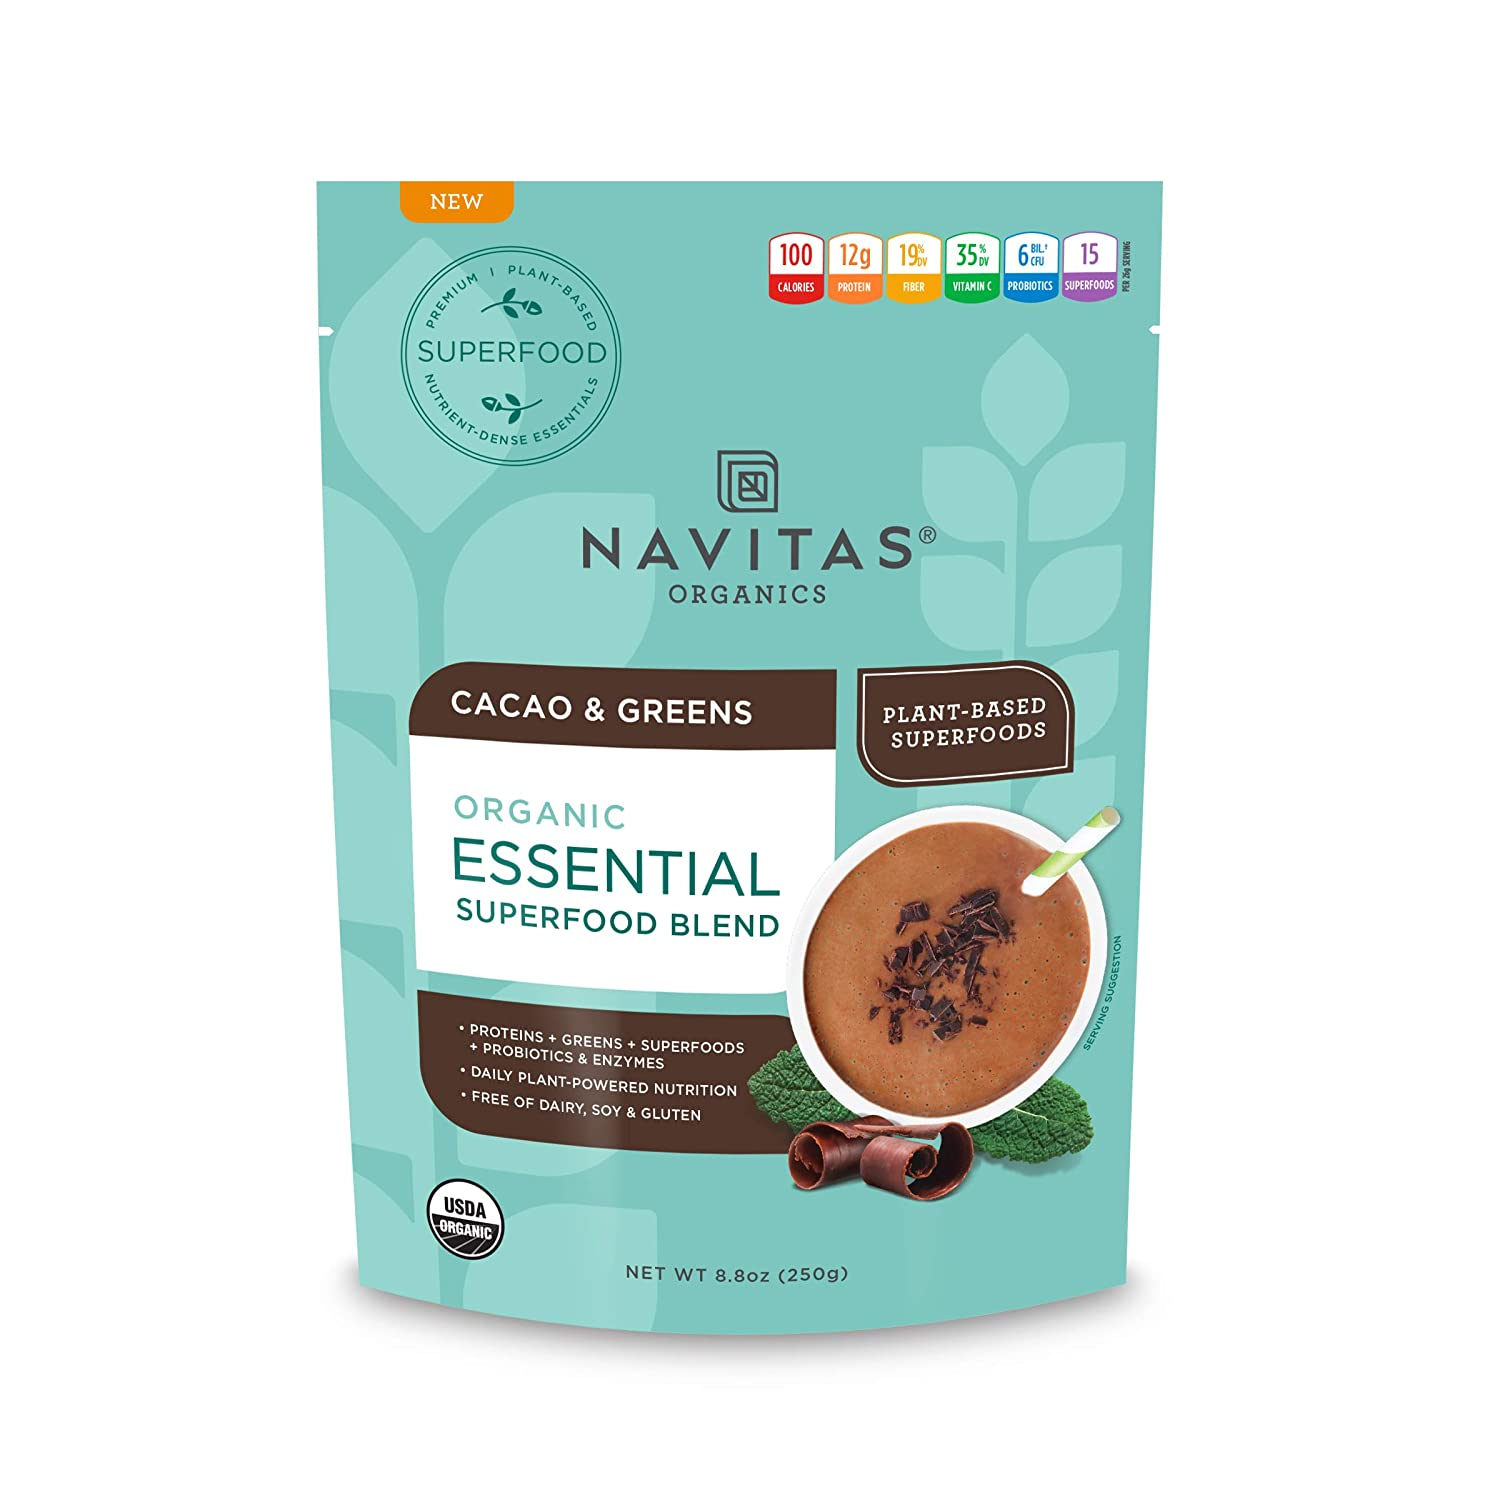 Navitas Organics Essential Superfood Protein Blend, Cacao & Greens, 8.8oz. Bag — Organic, Non-GMO, Gluten-Free, Plant-Based Protein